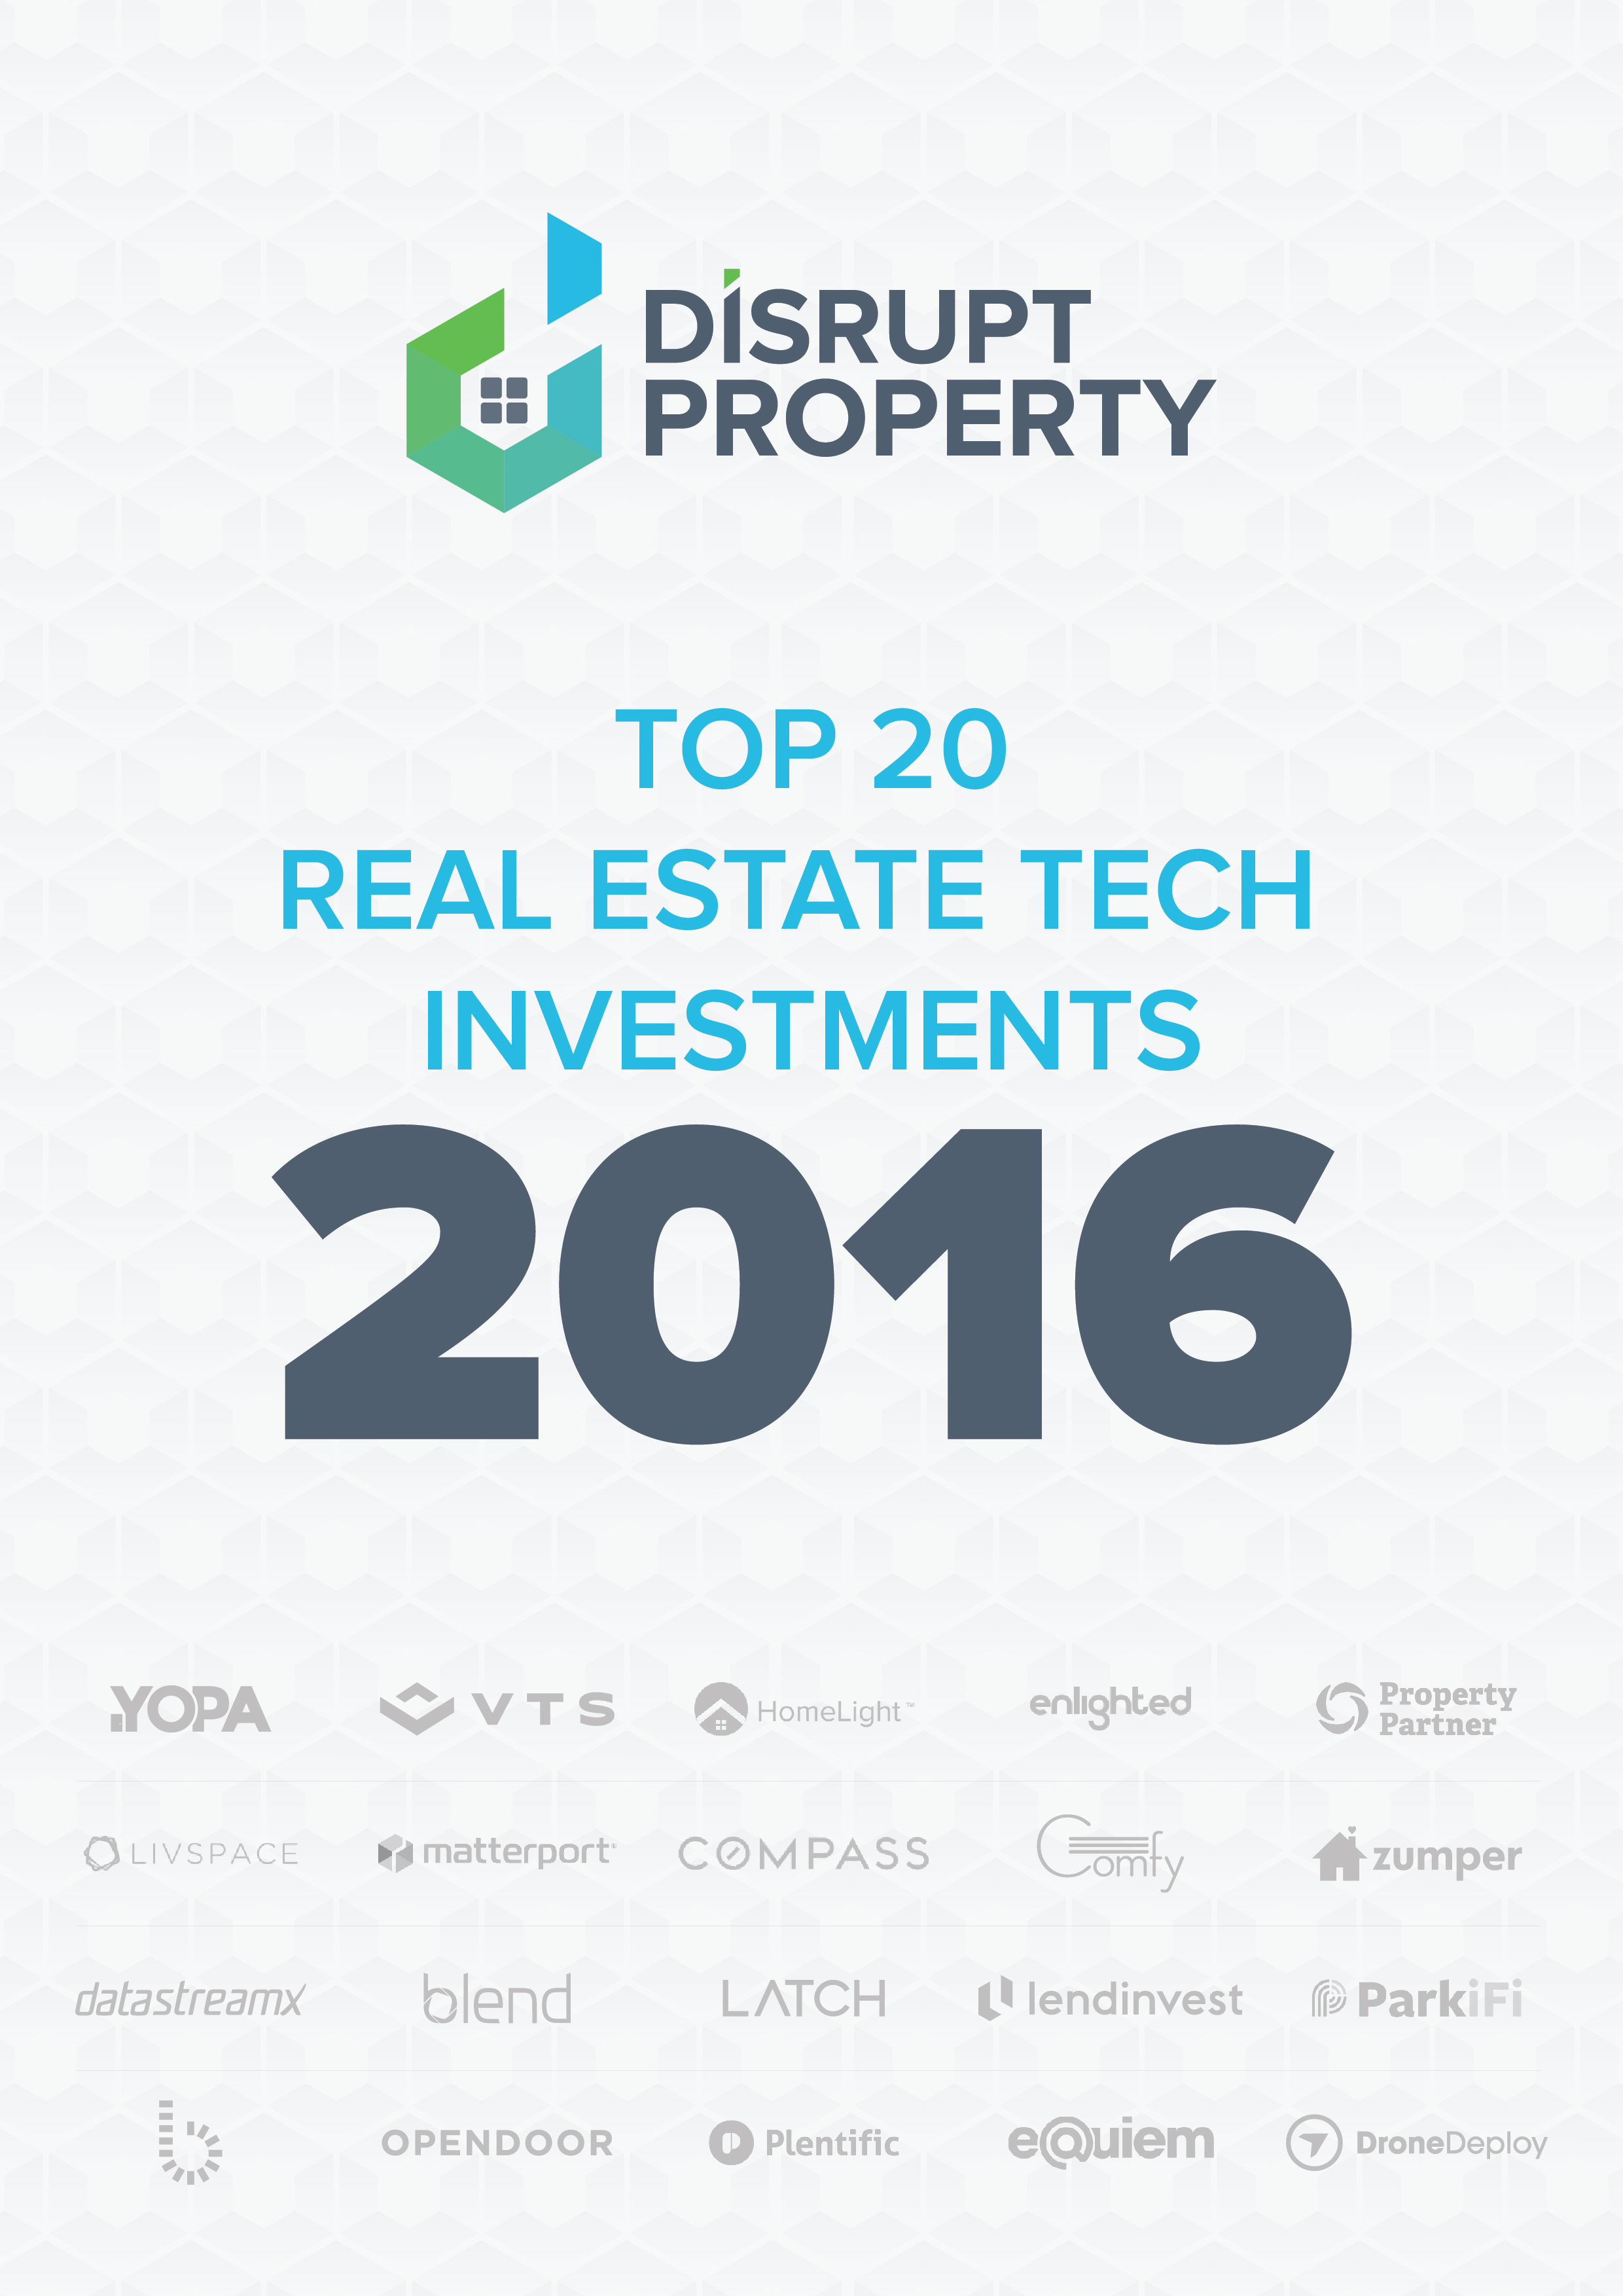 Best real estate investment options in india 2016